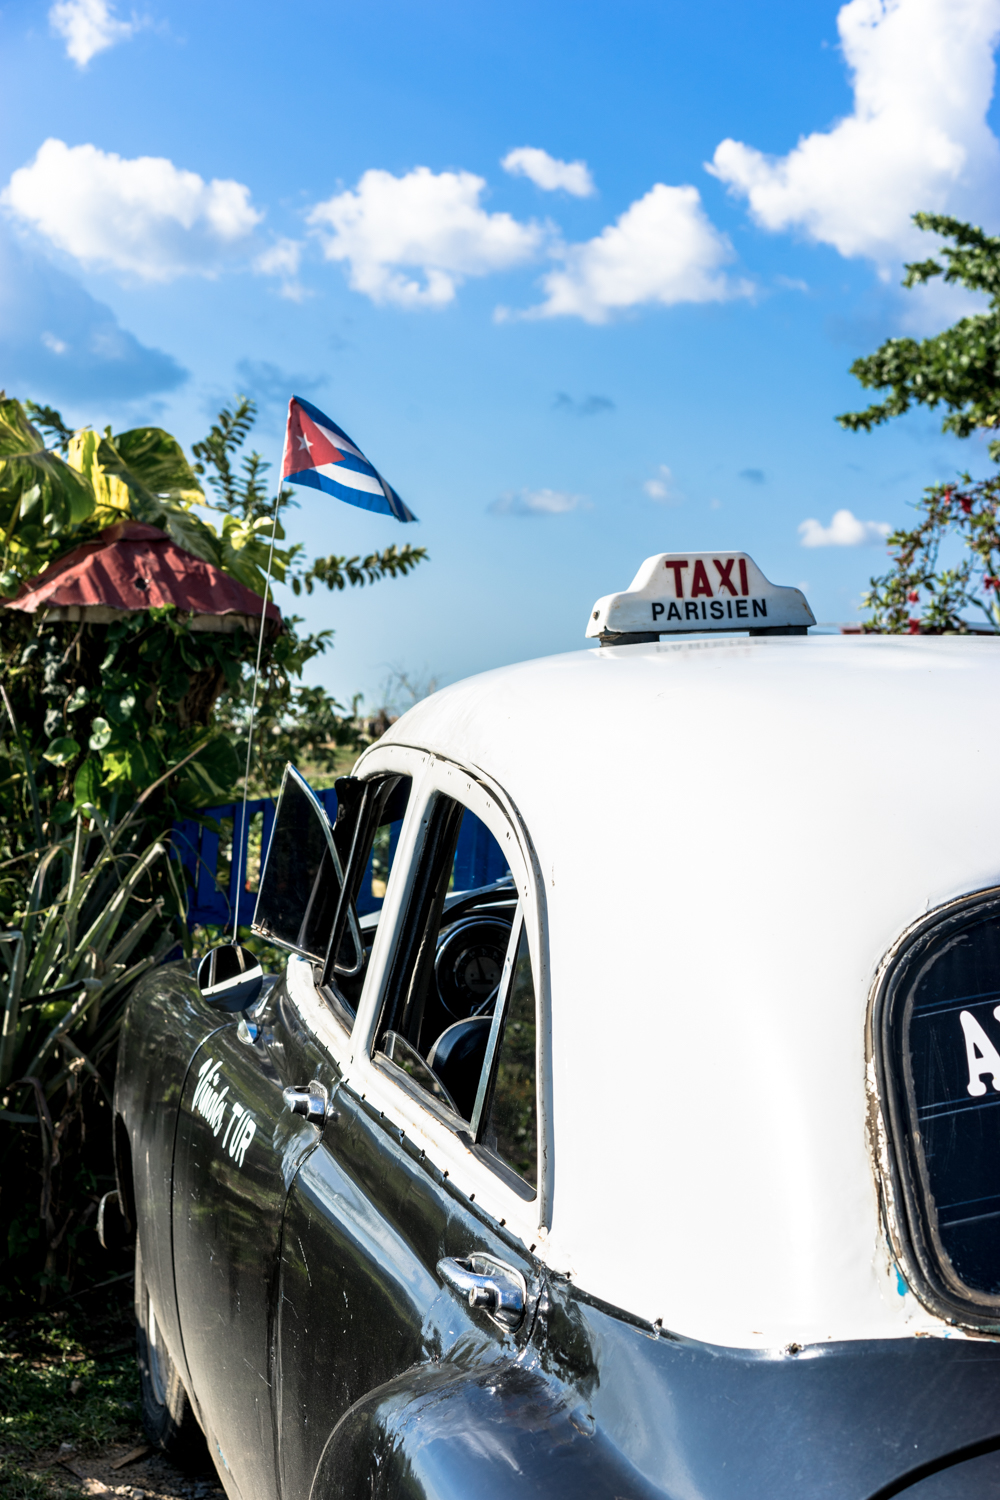 Cuban taxi parked outside of the Finca Agroecologica El Paraiso restaurant.